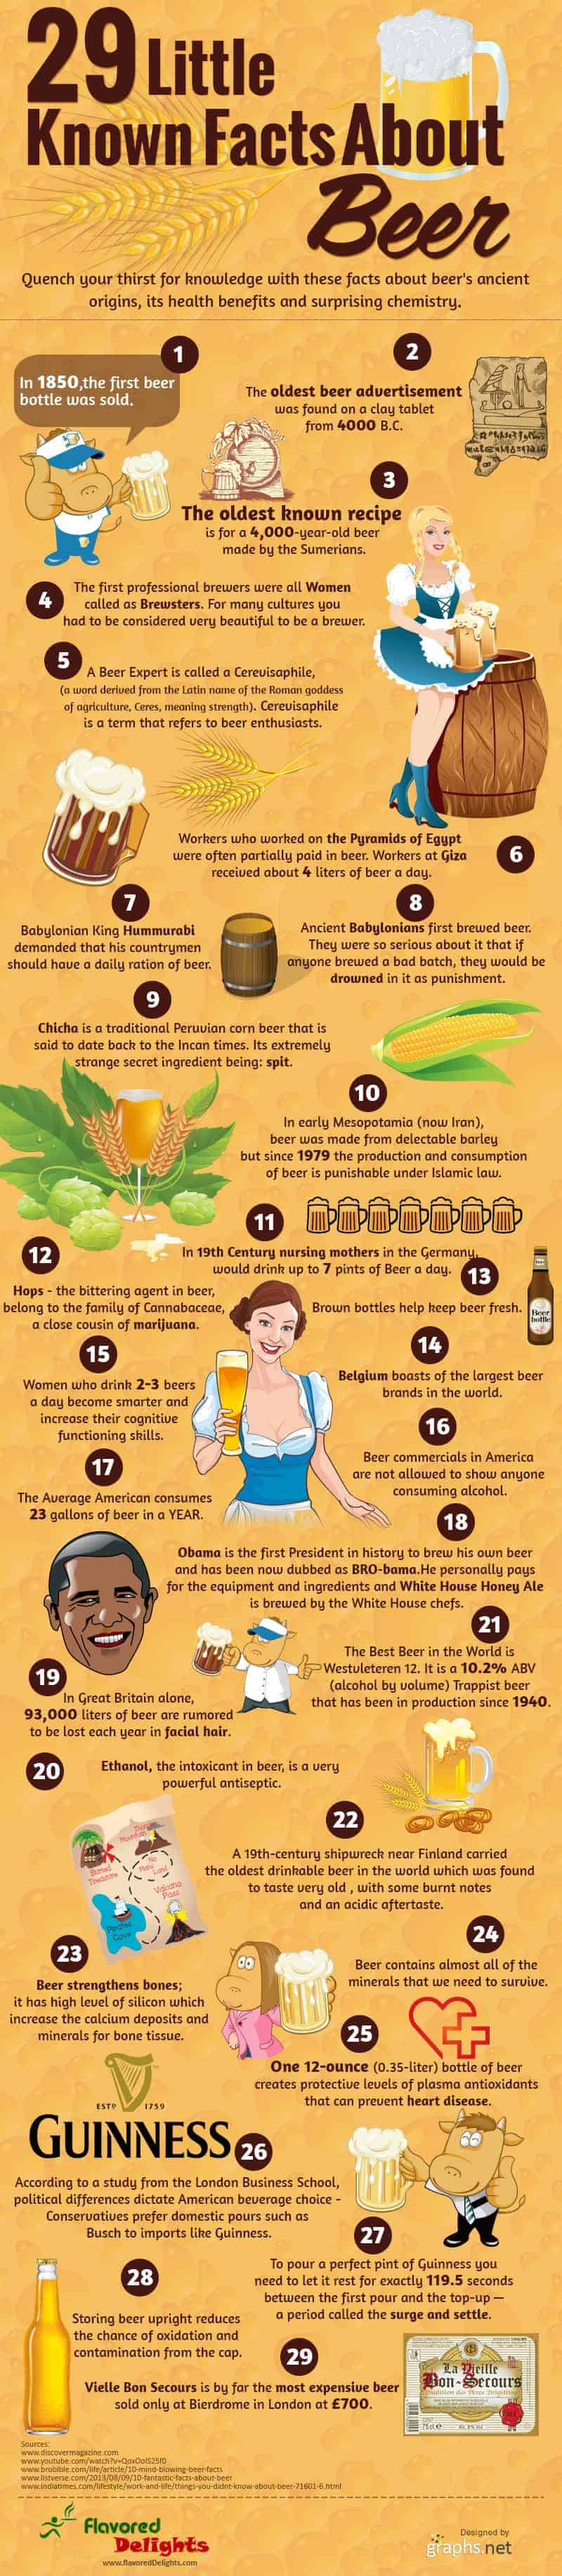 29-interesting-facts-of-beer_5266092ae6685